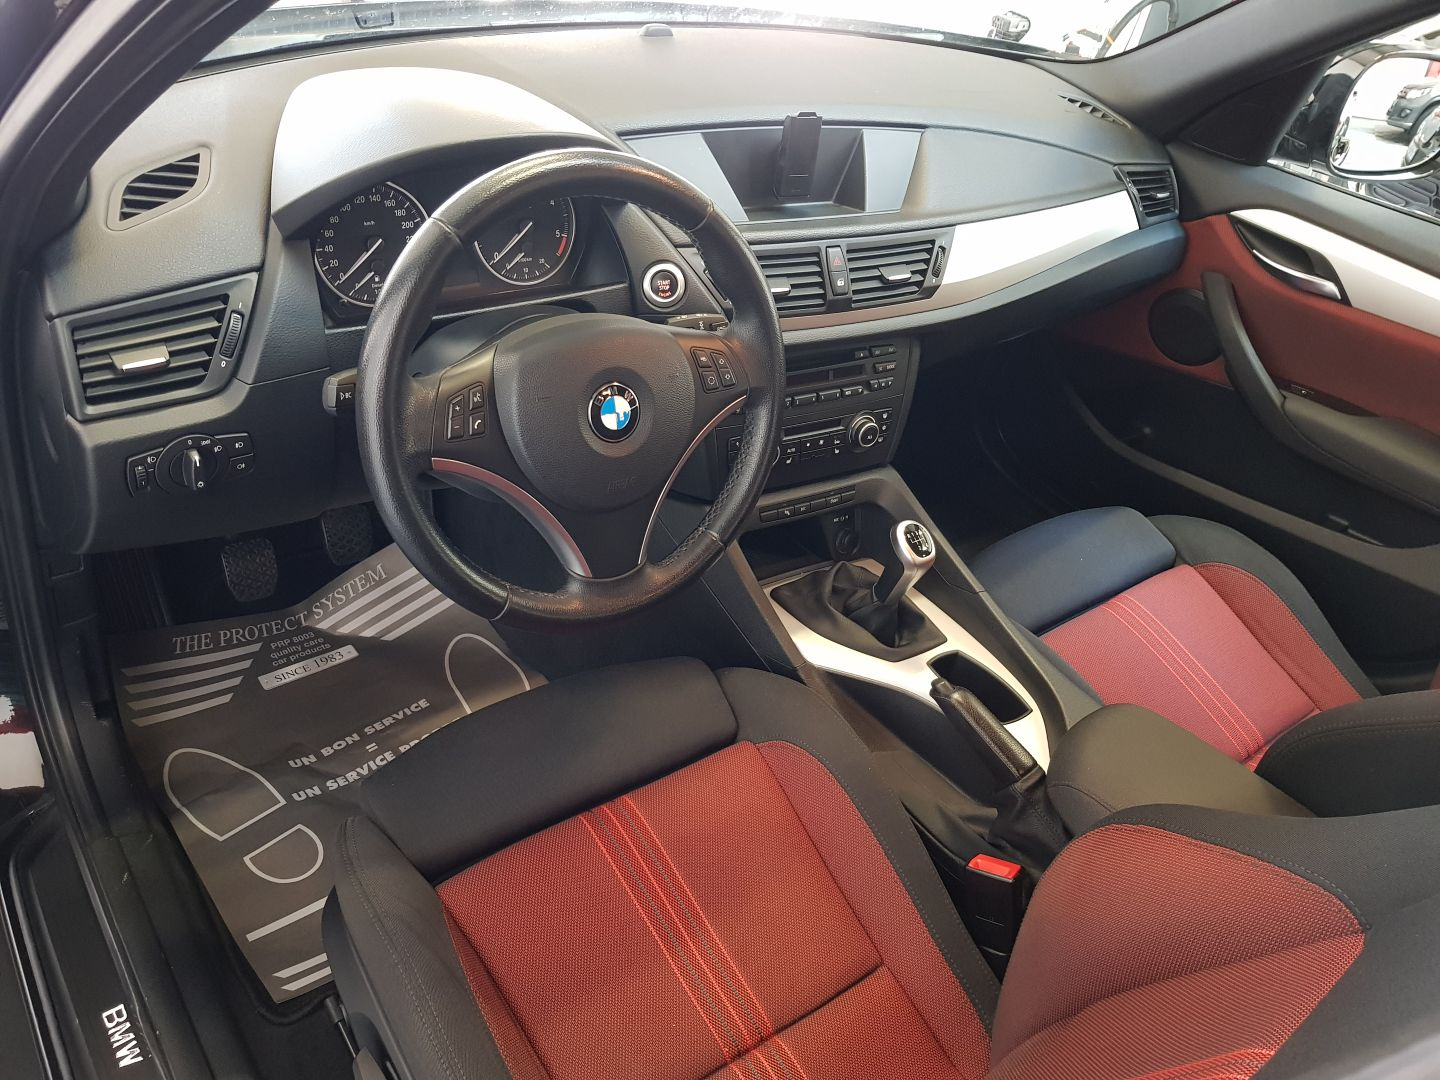 BMW X1 18D SDRIVE